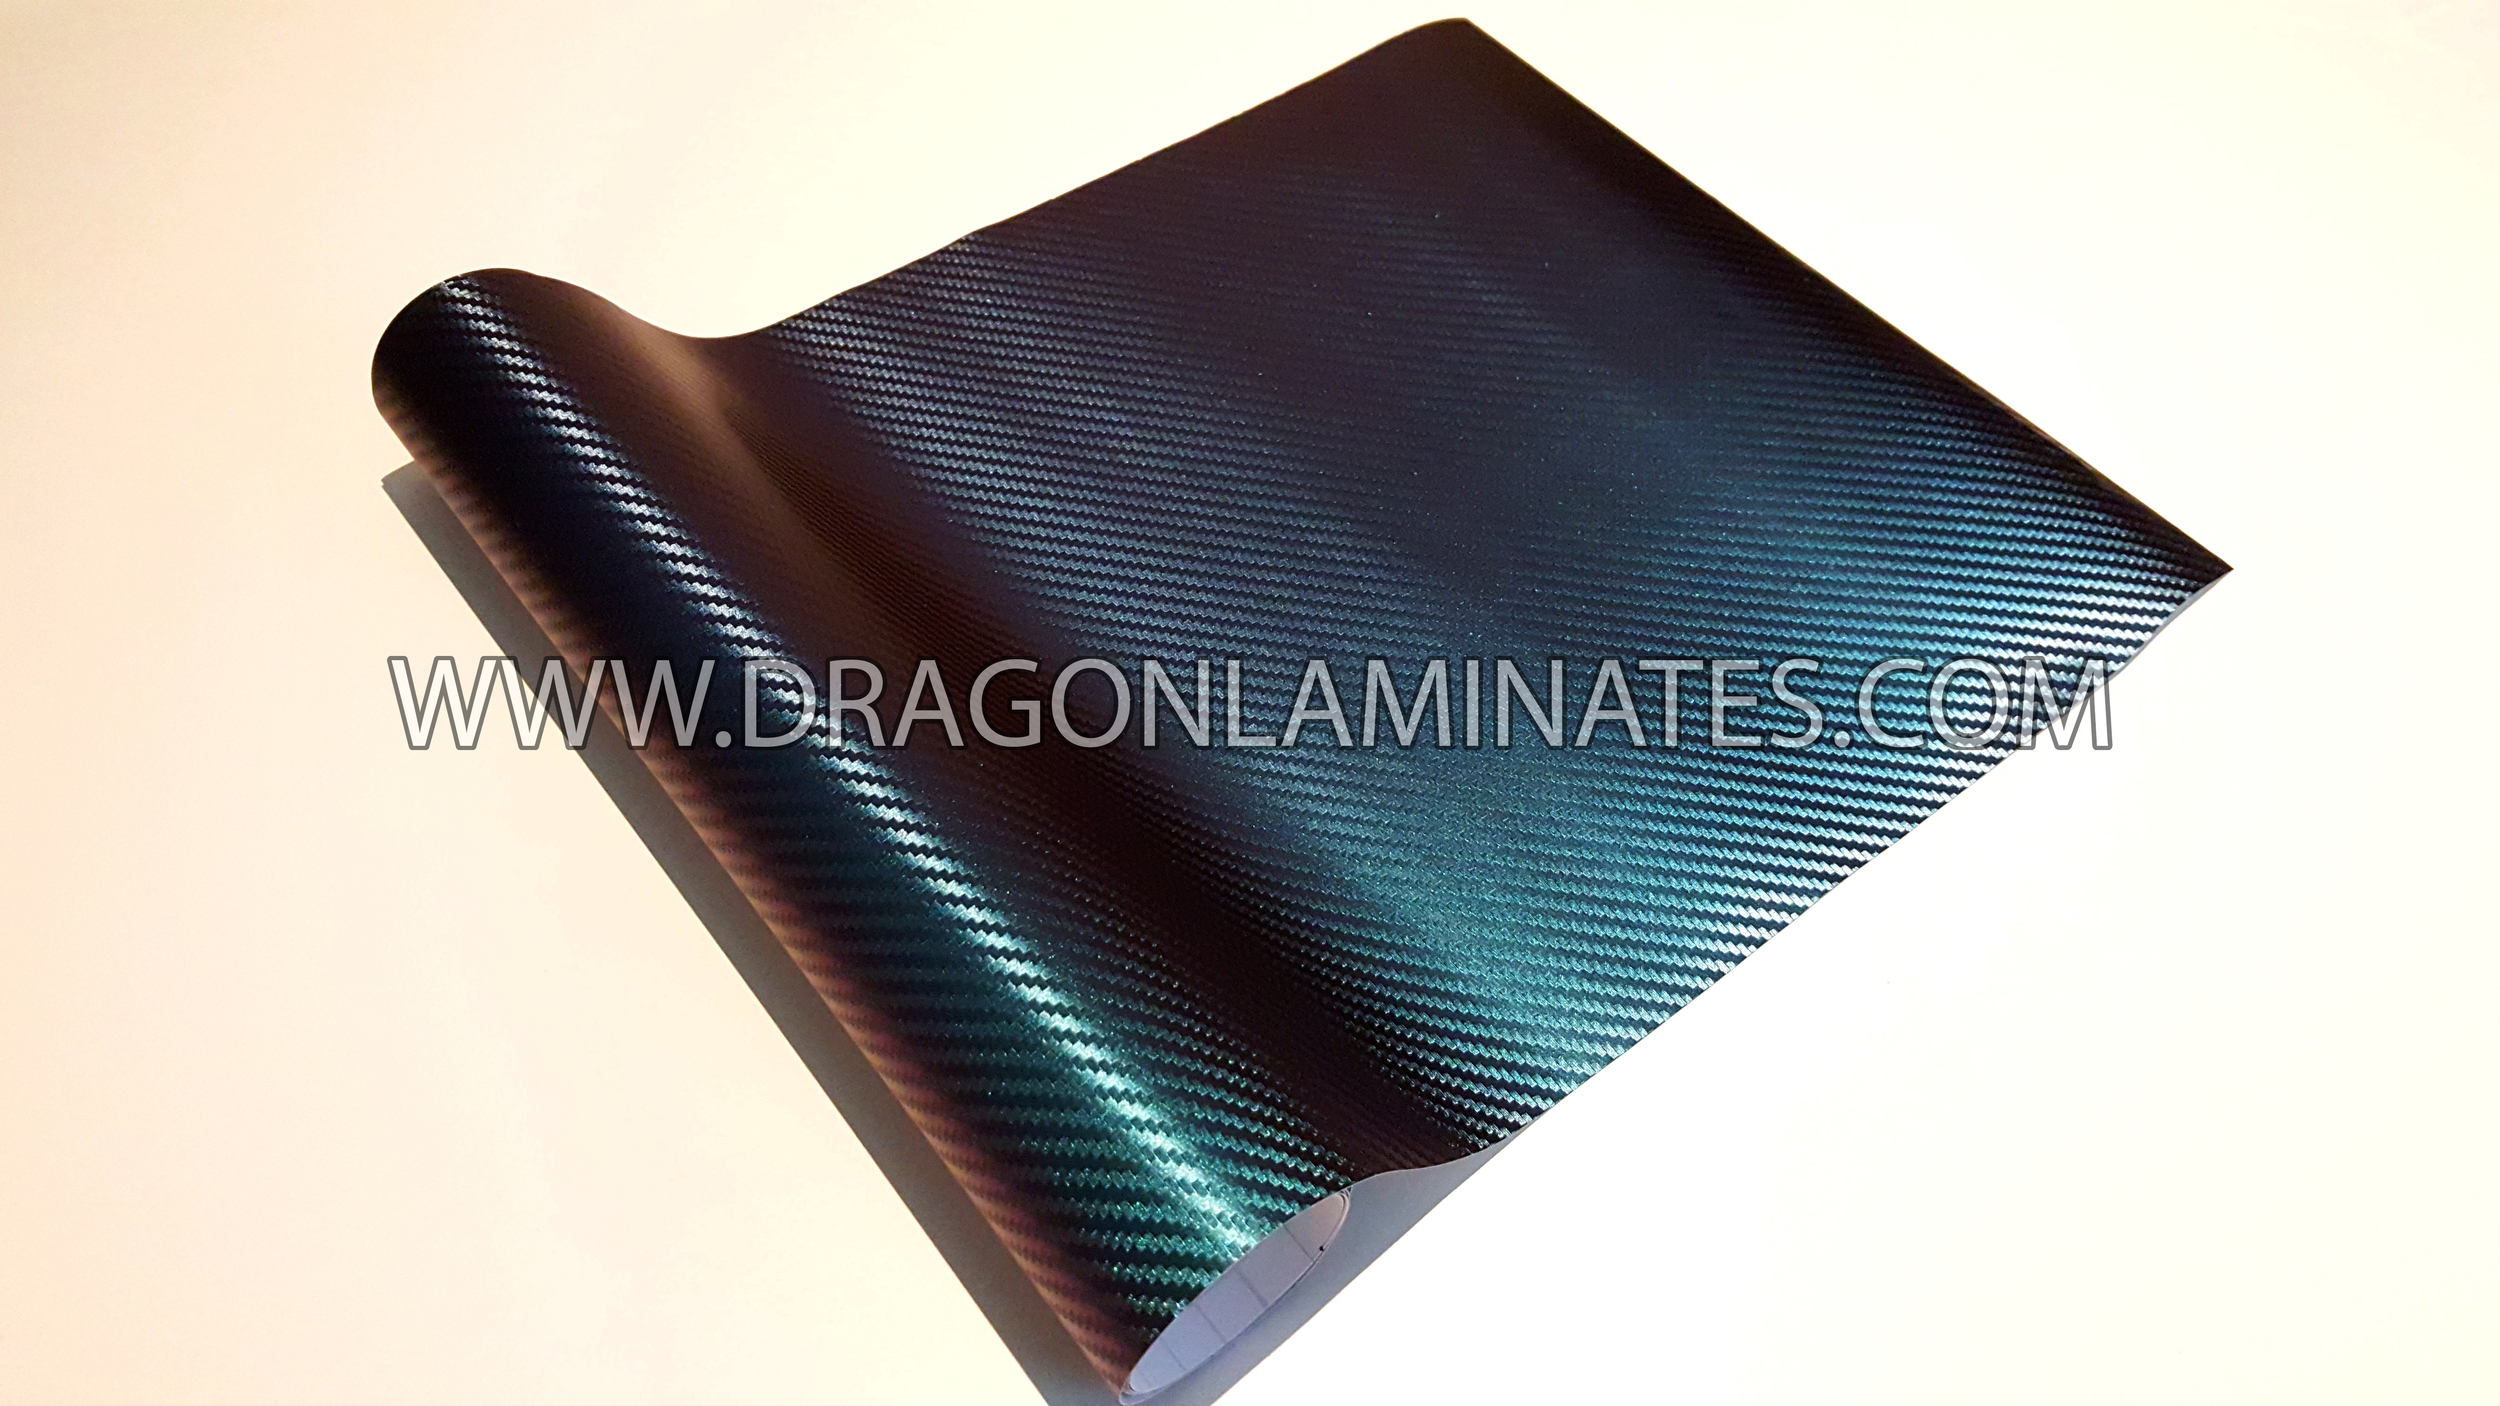 teal purple chameleon carbon fiber wrap.jpg